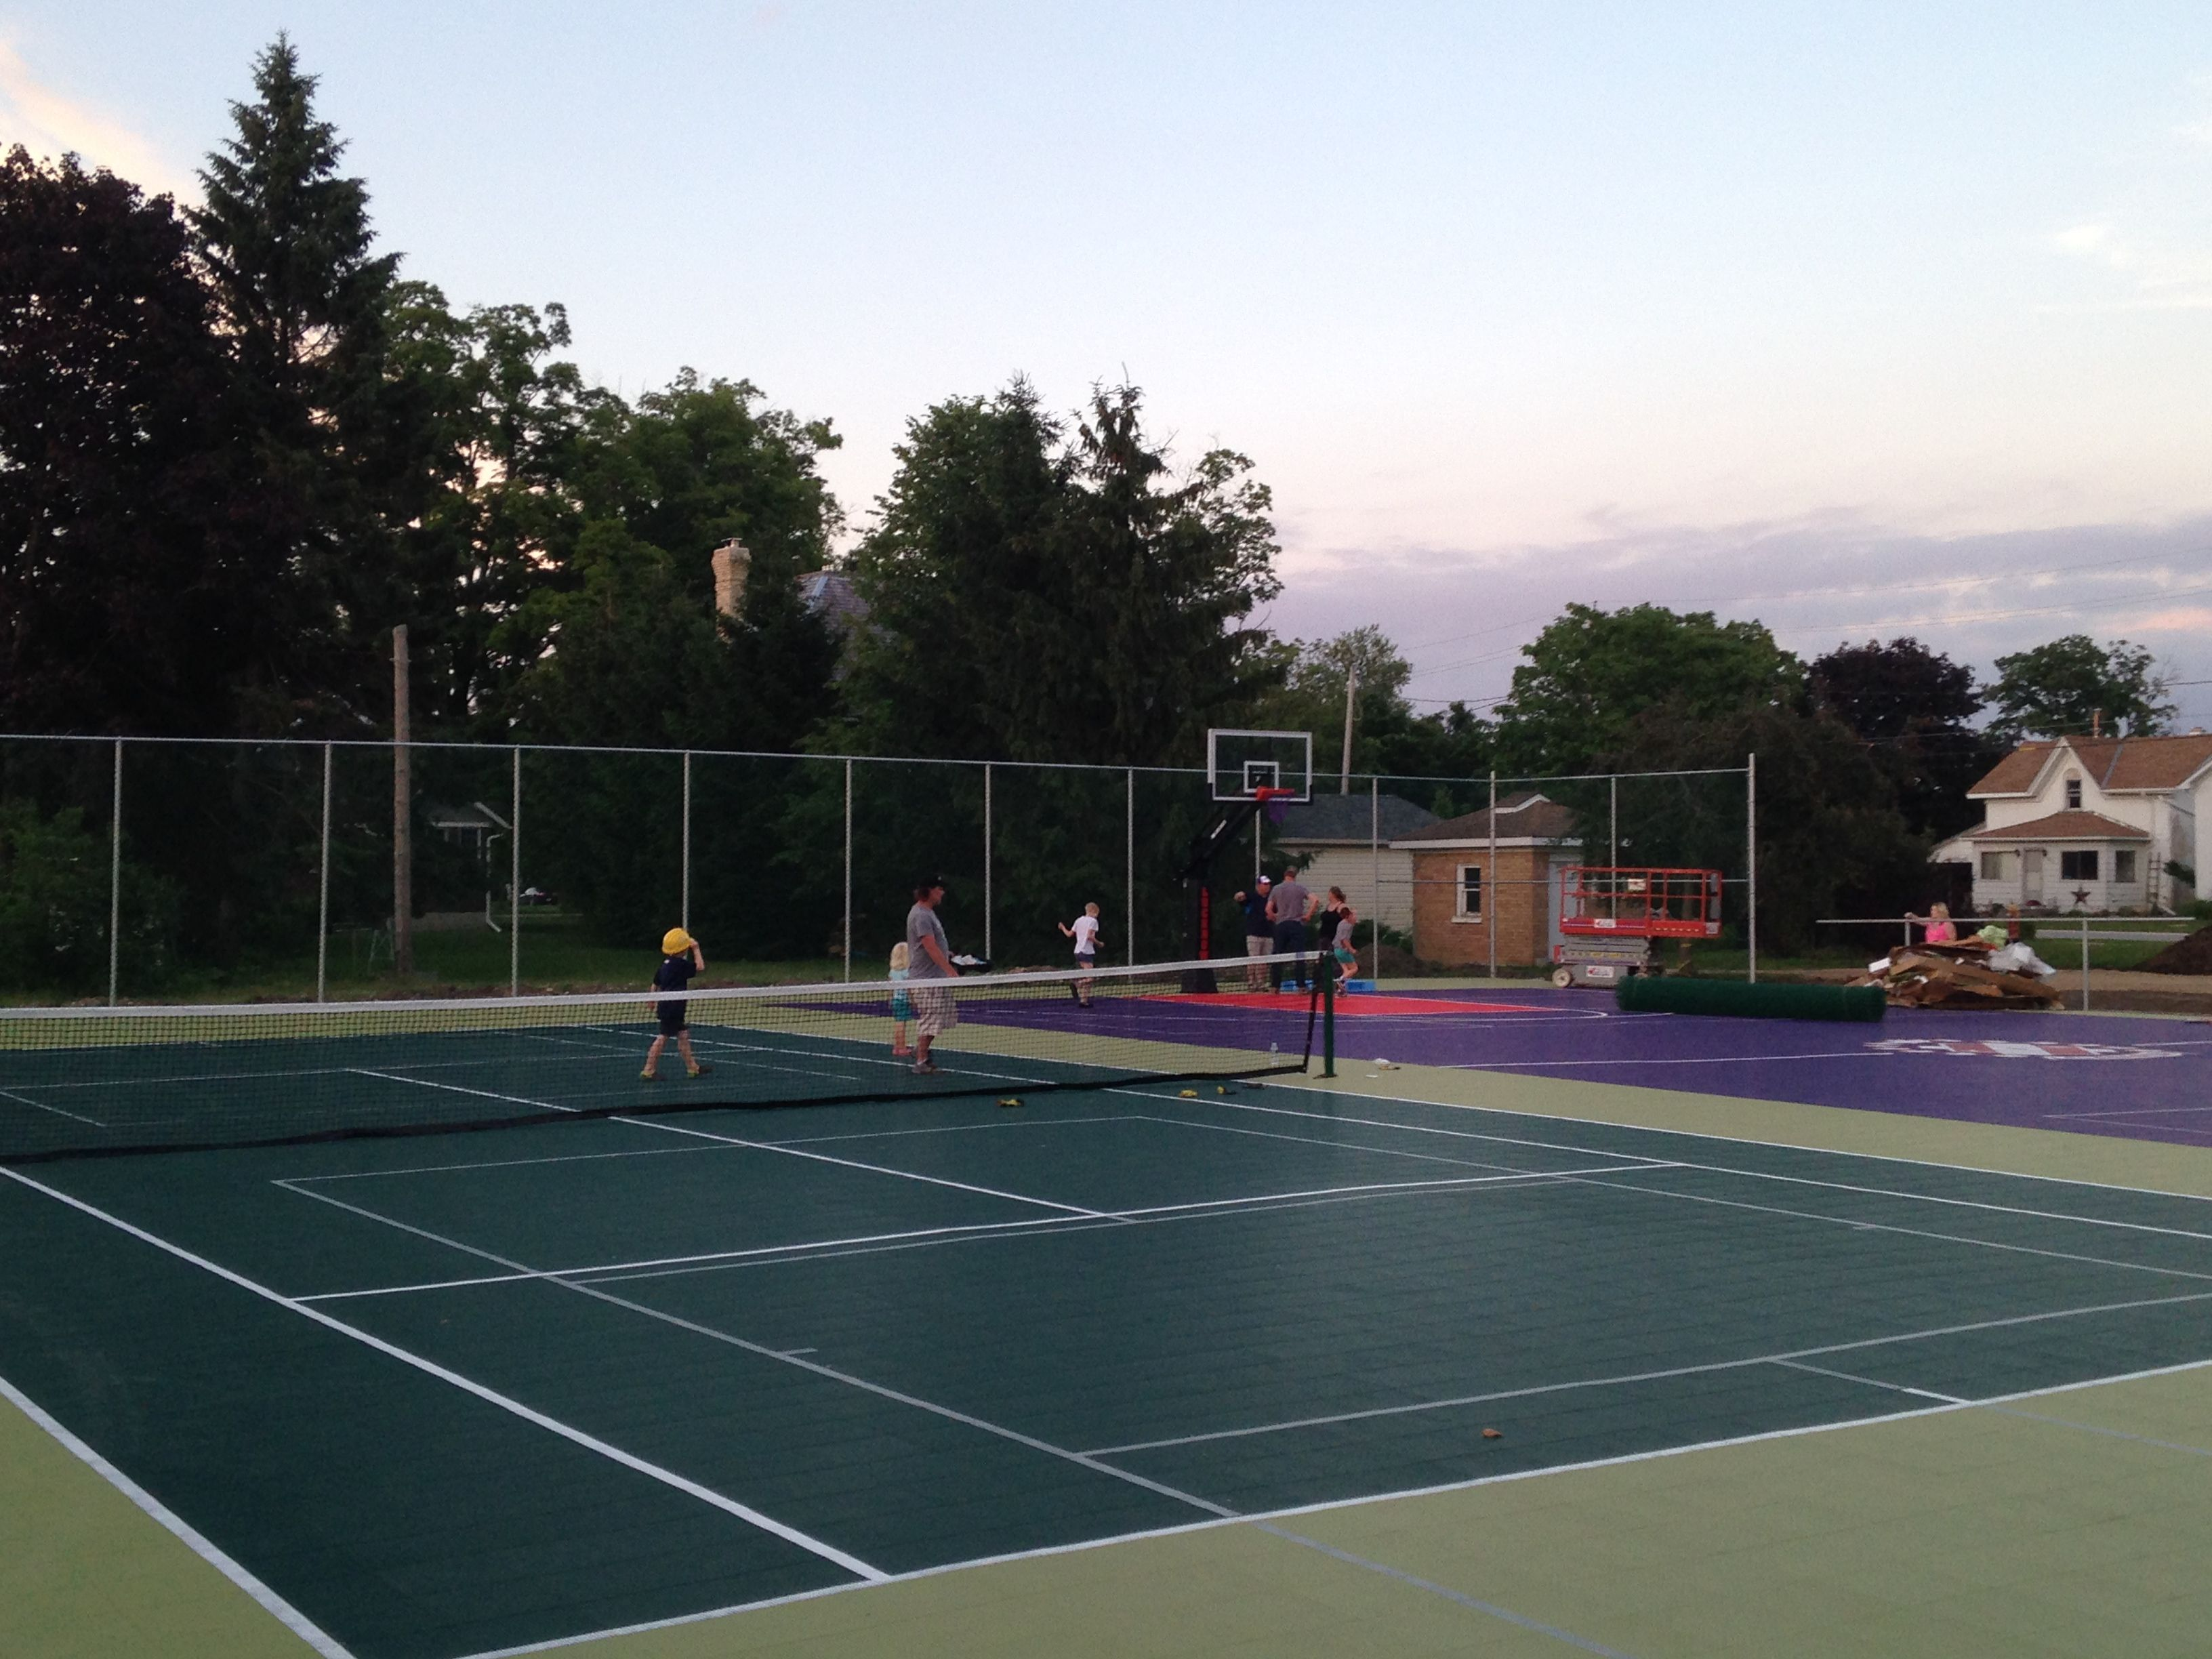 we converted these two community tennis courts into something fun